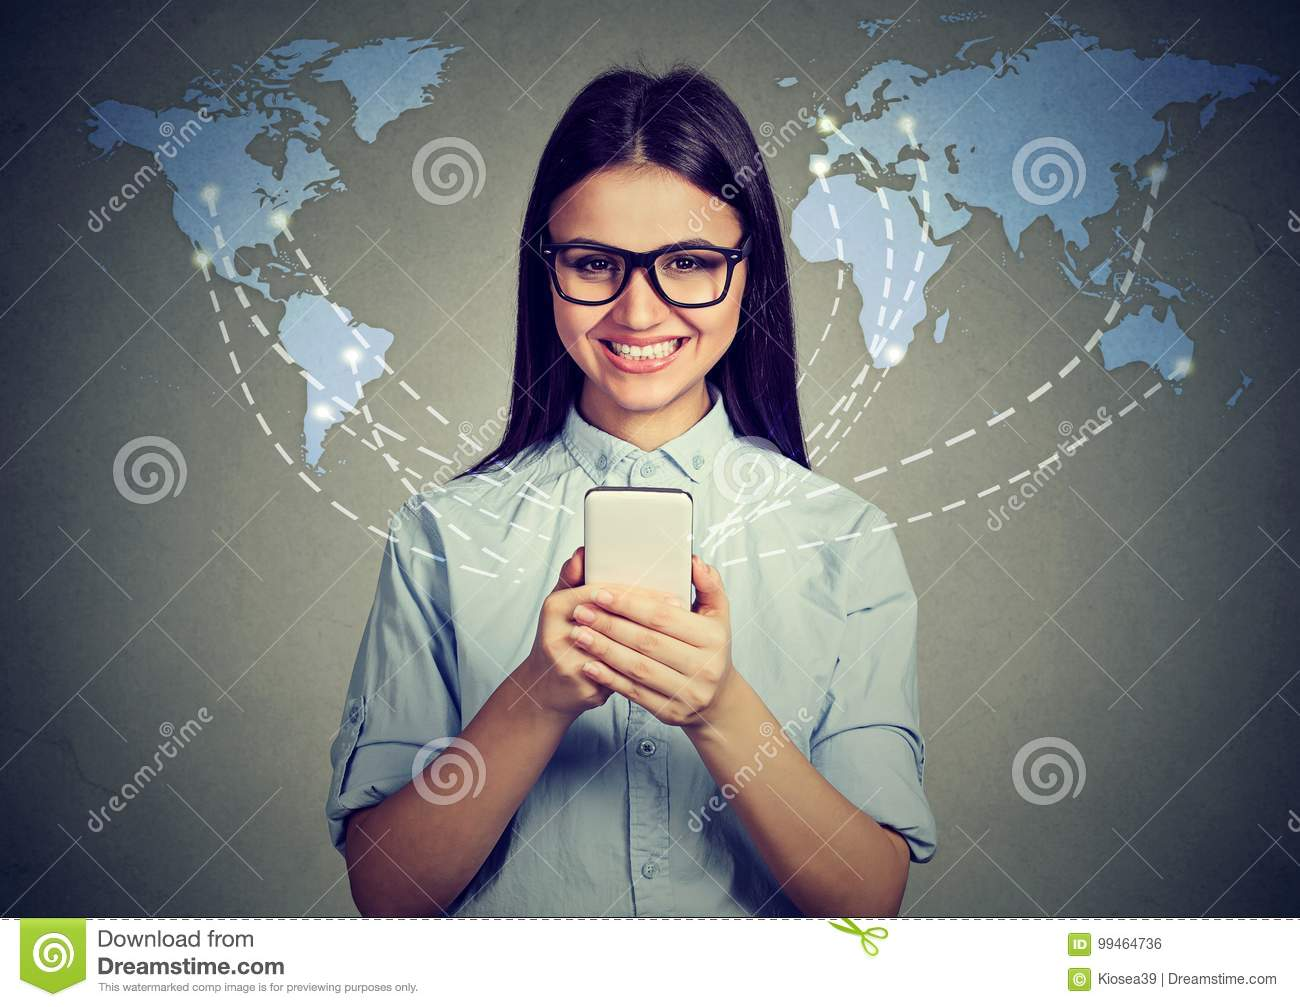 Modern communication technology concept. Happy woman with smartphone connected browsing internet worldwide